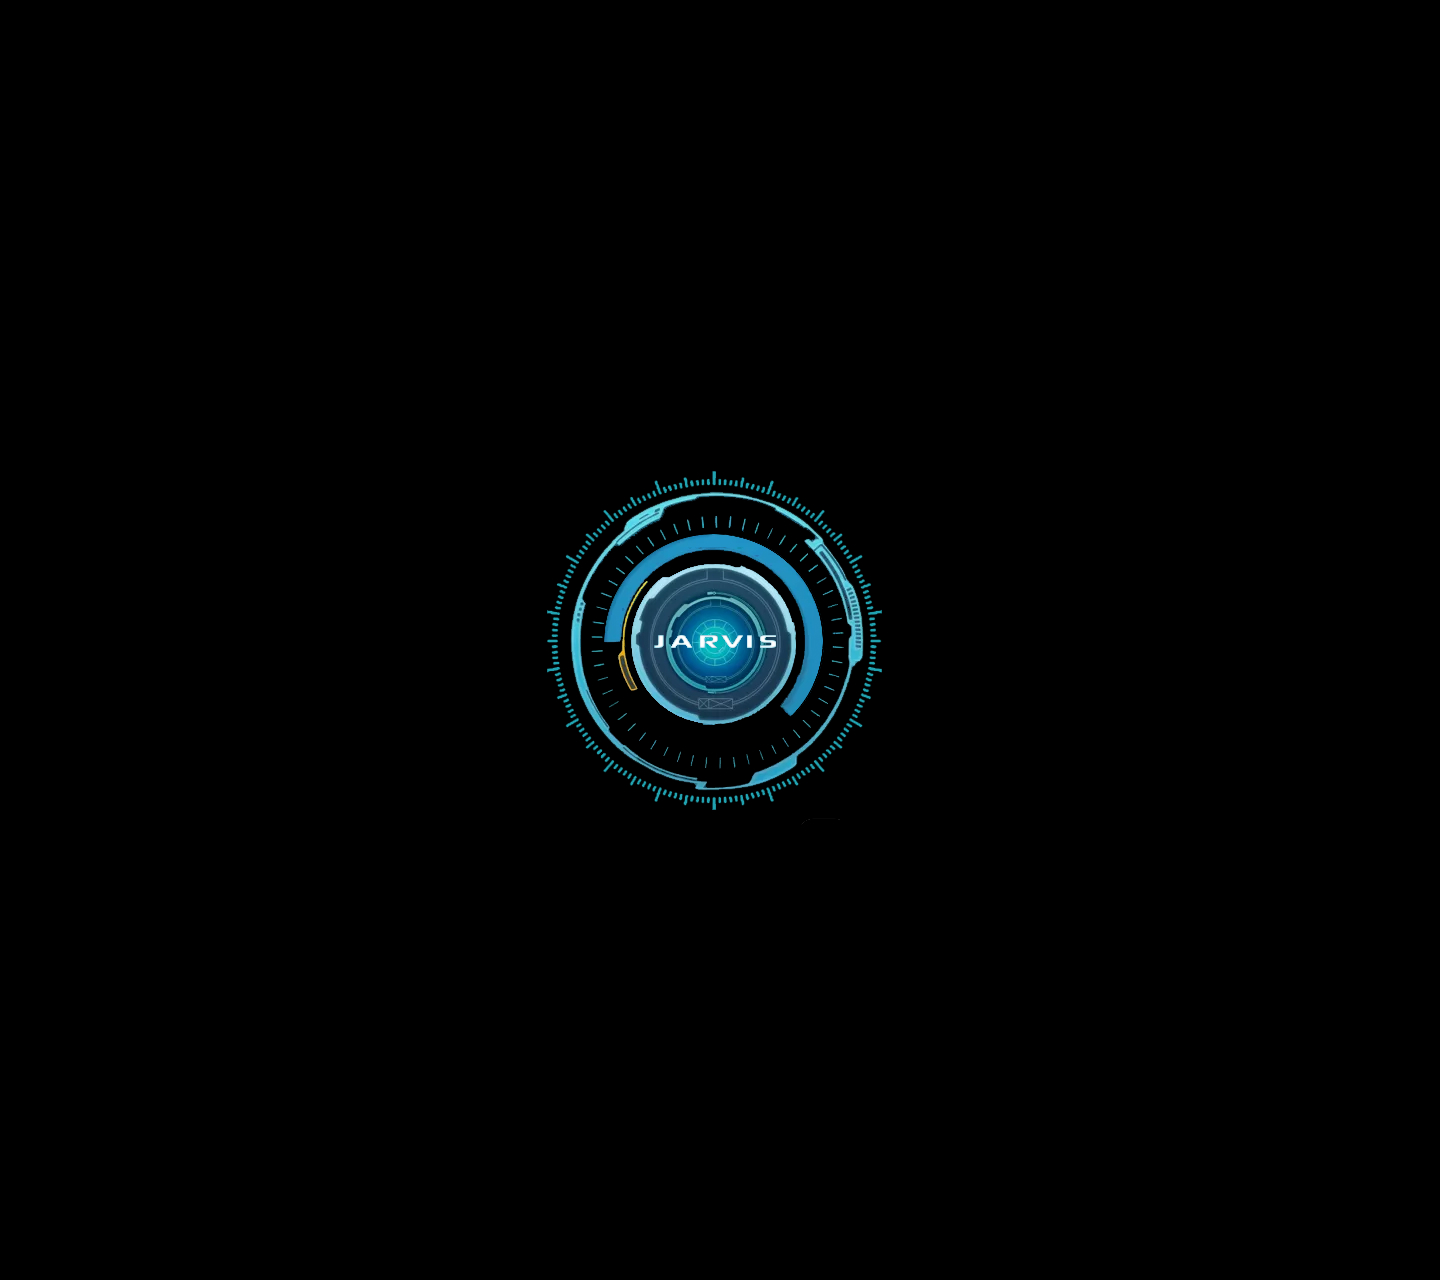 Iron Man Jarvis Animated Wallpaper - WallpaperSafari